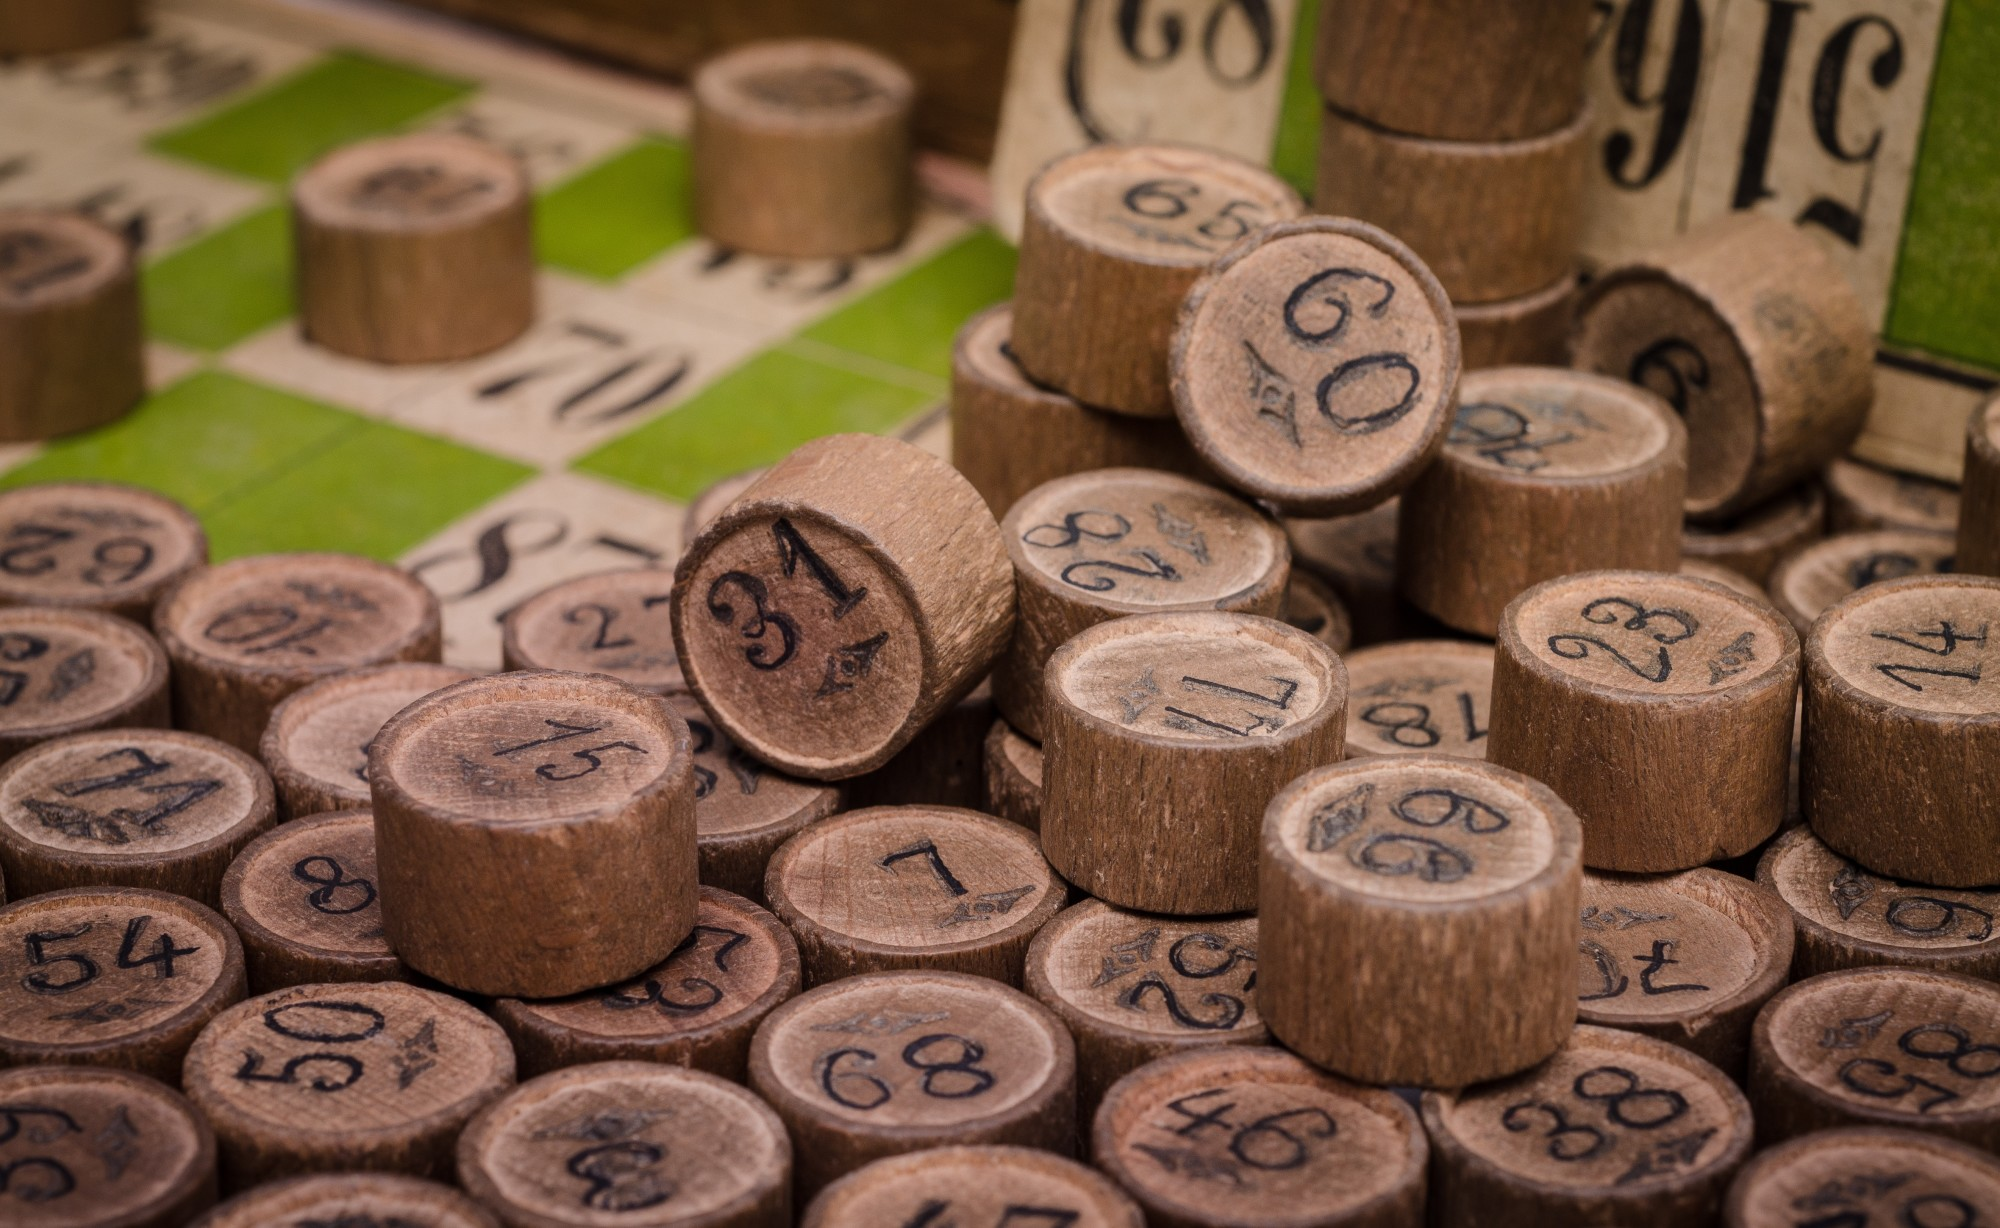 Fun Bingo Ideas: How to Spice Up the Game and Have a Great Time